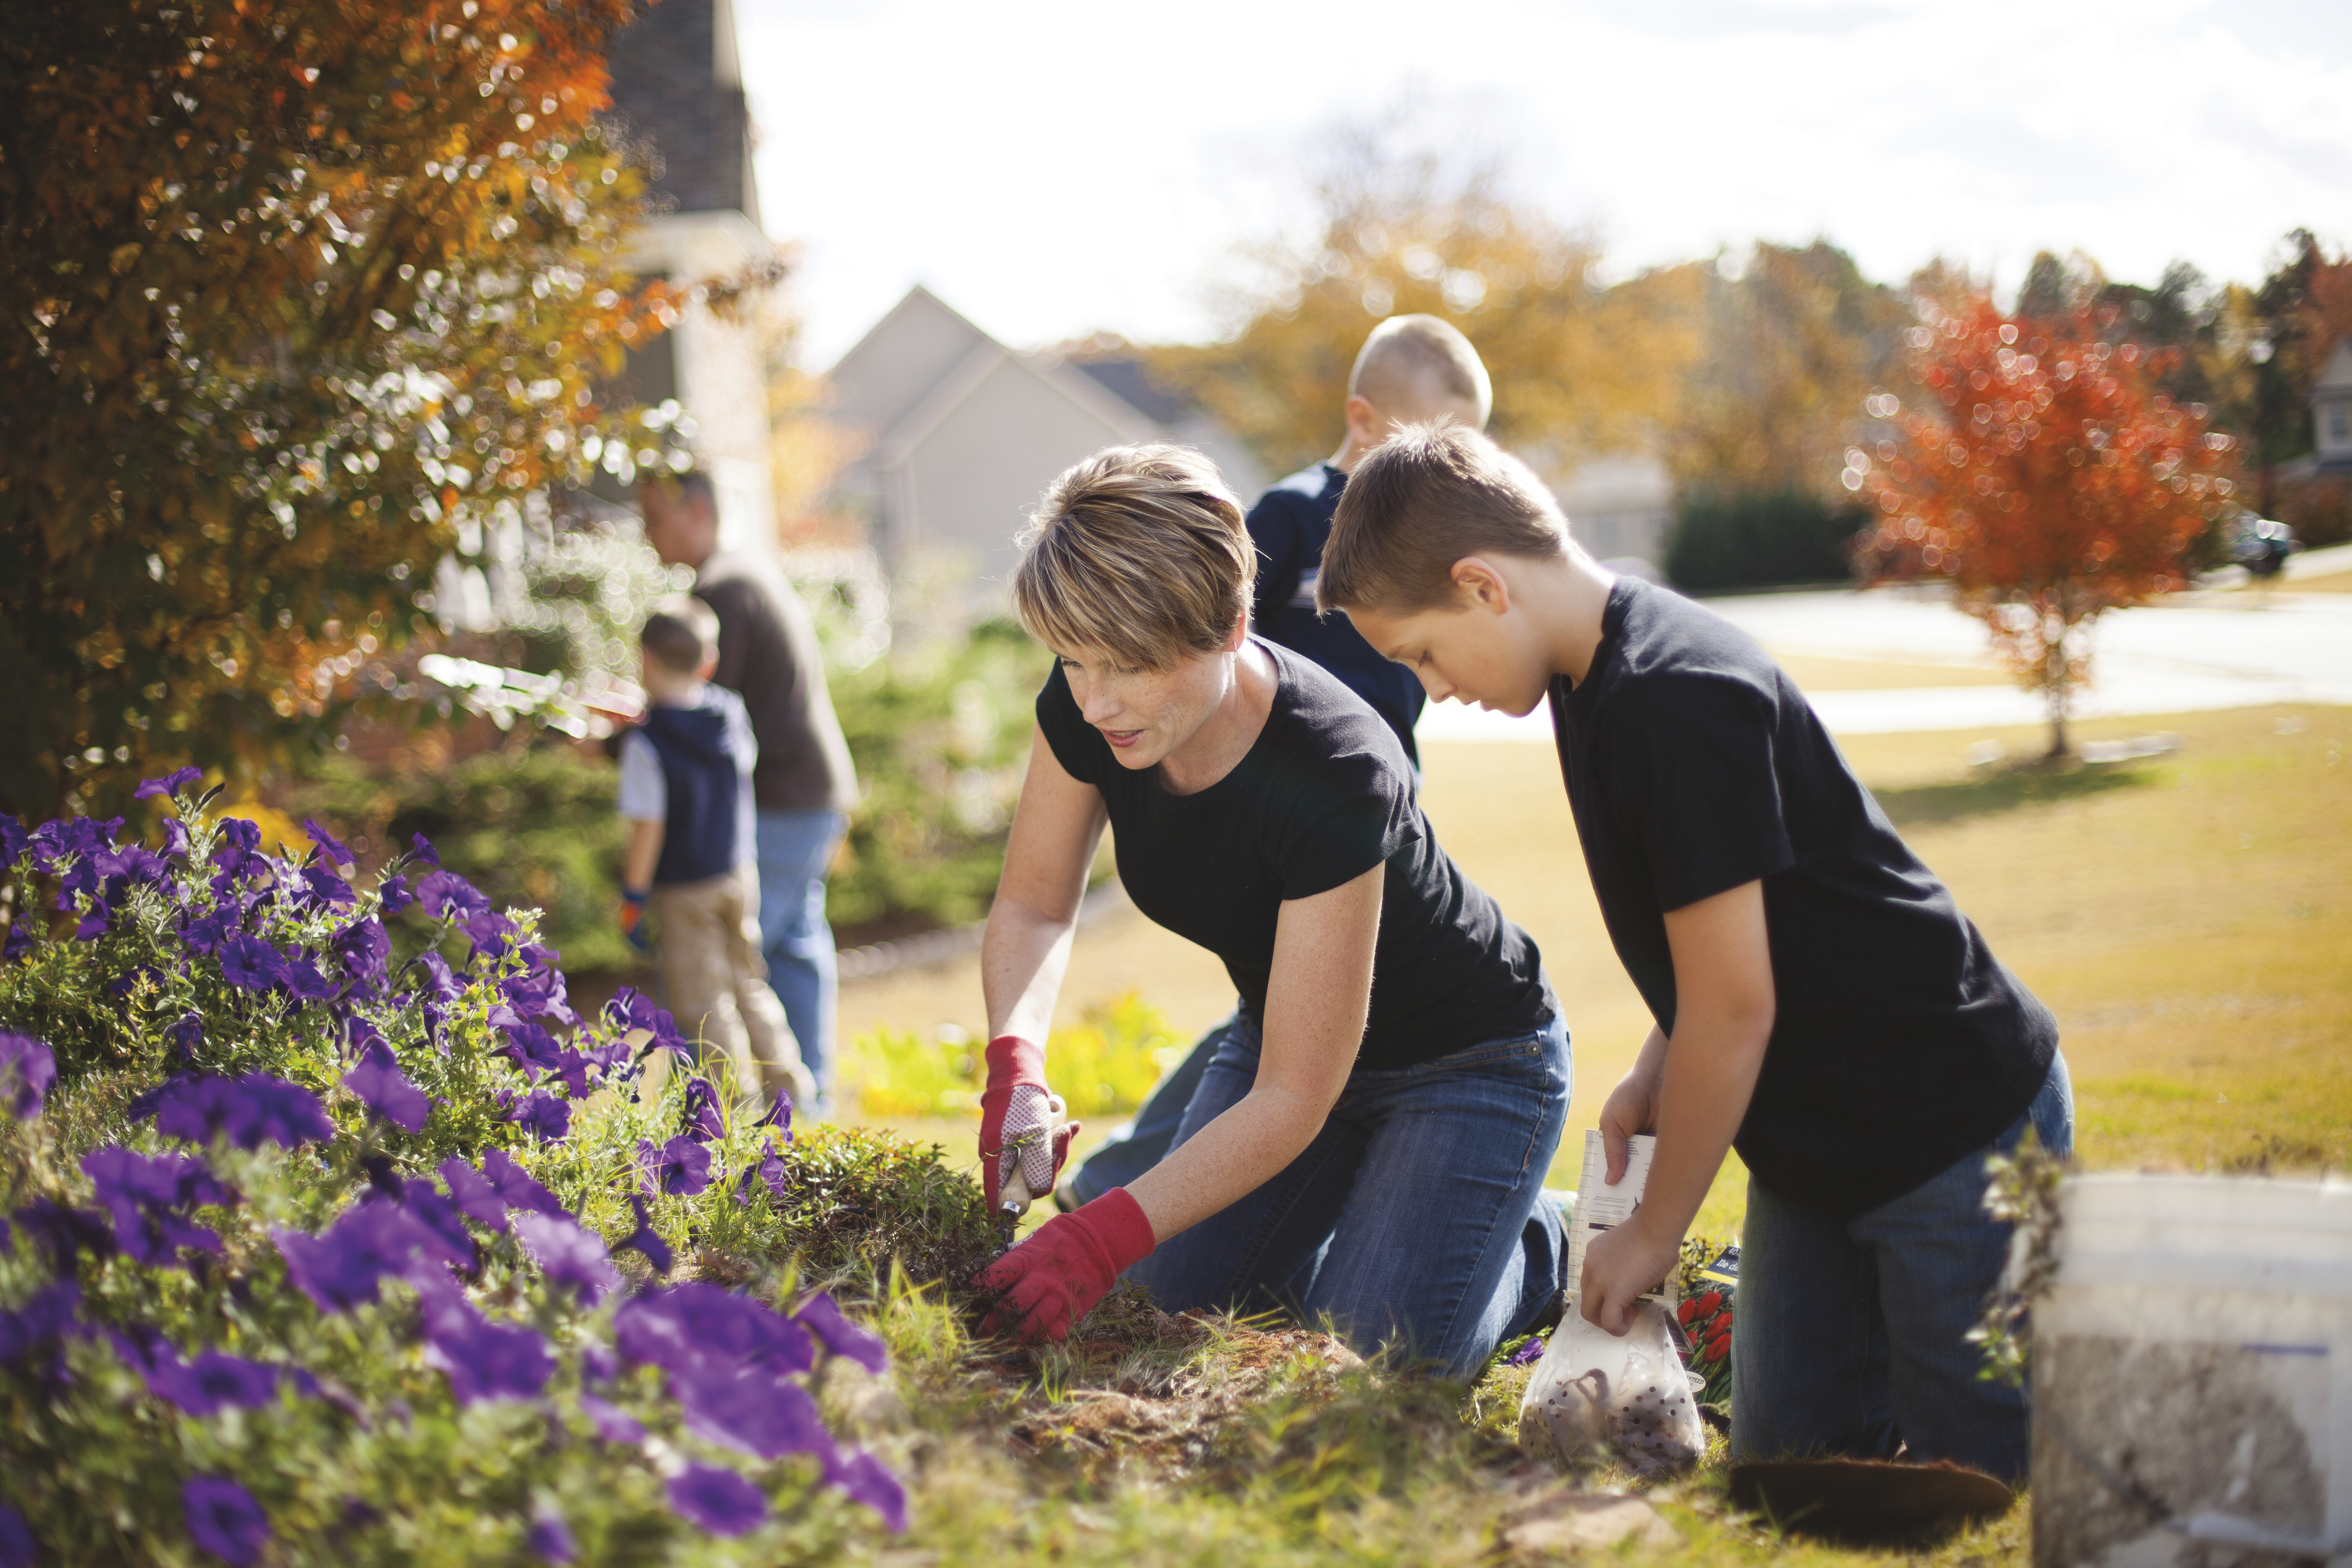 A mother and son working together in a flowerbed.